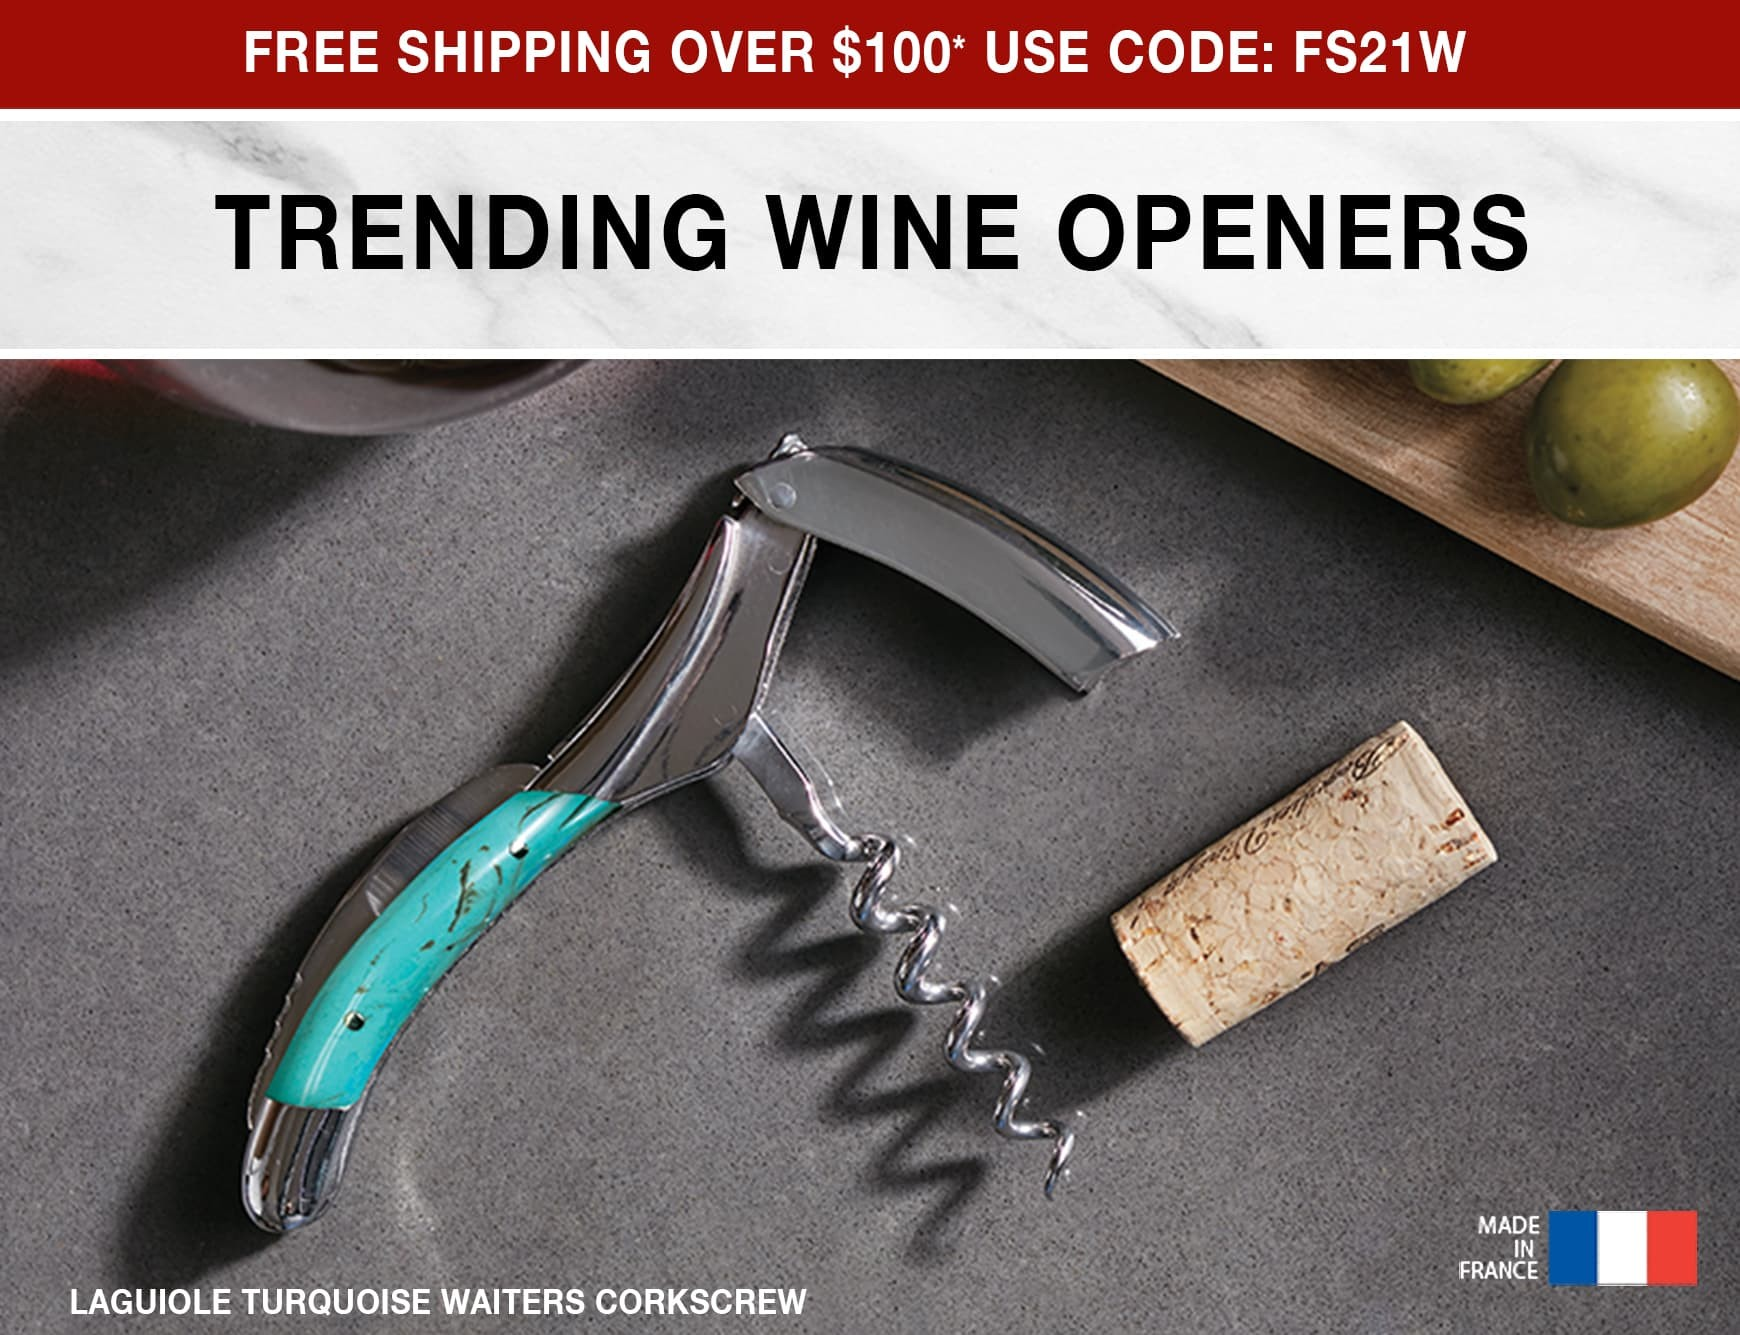 Trending Wine Openers - Free Shipping Over $100 Use Code: FS21W